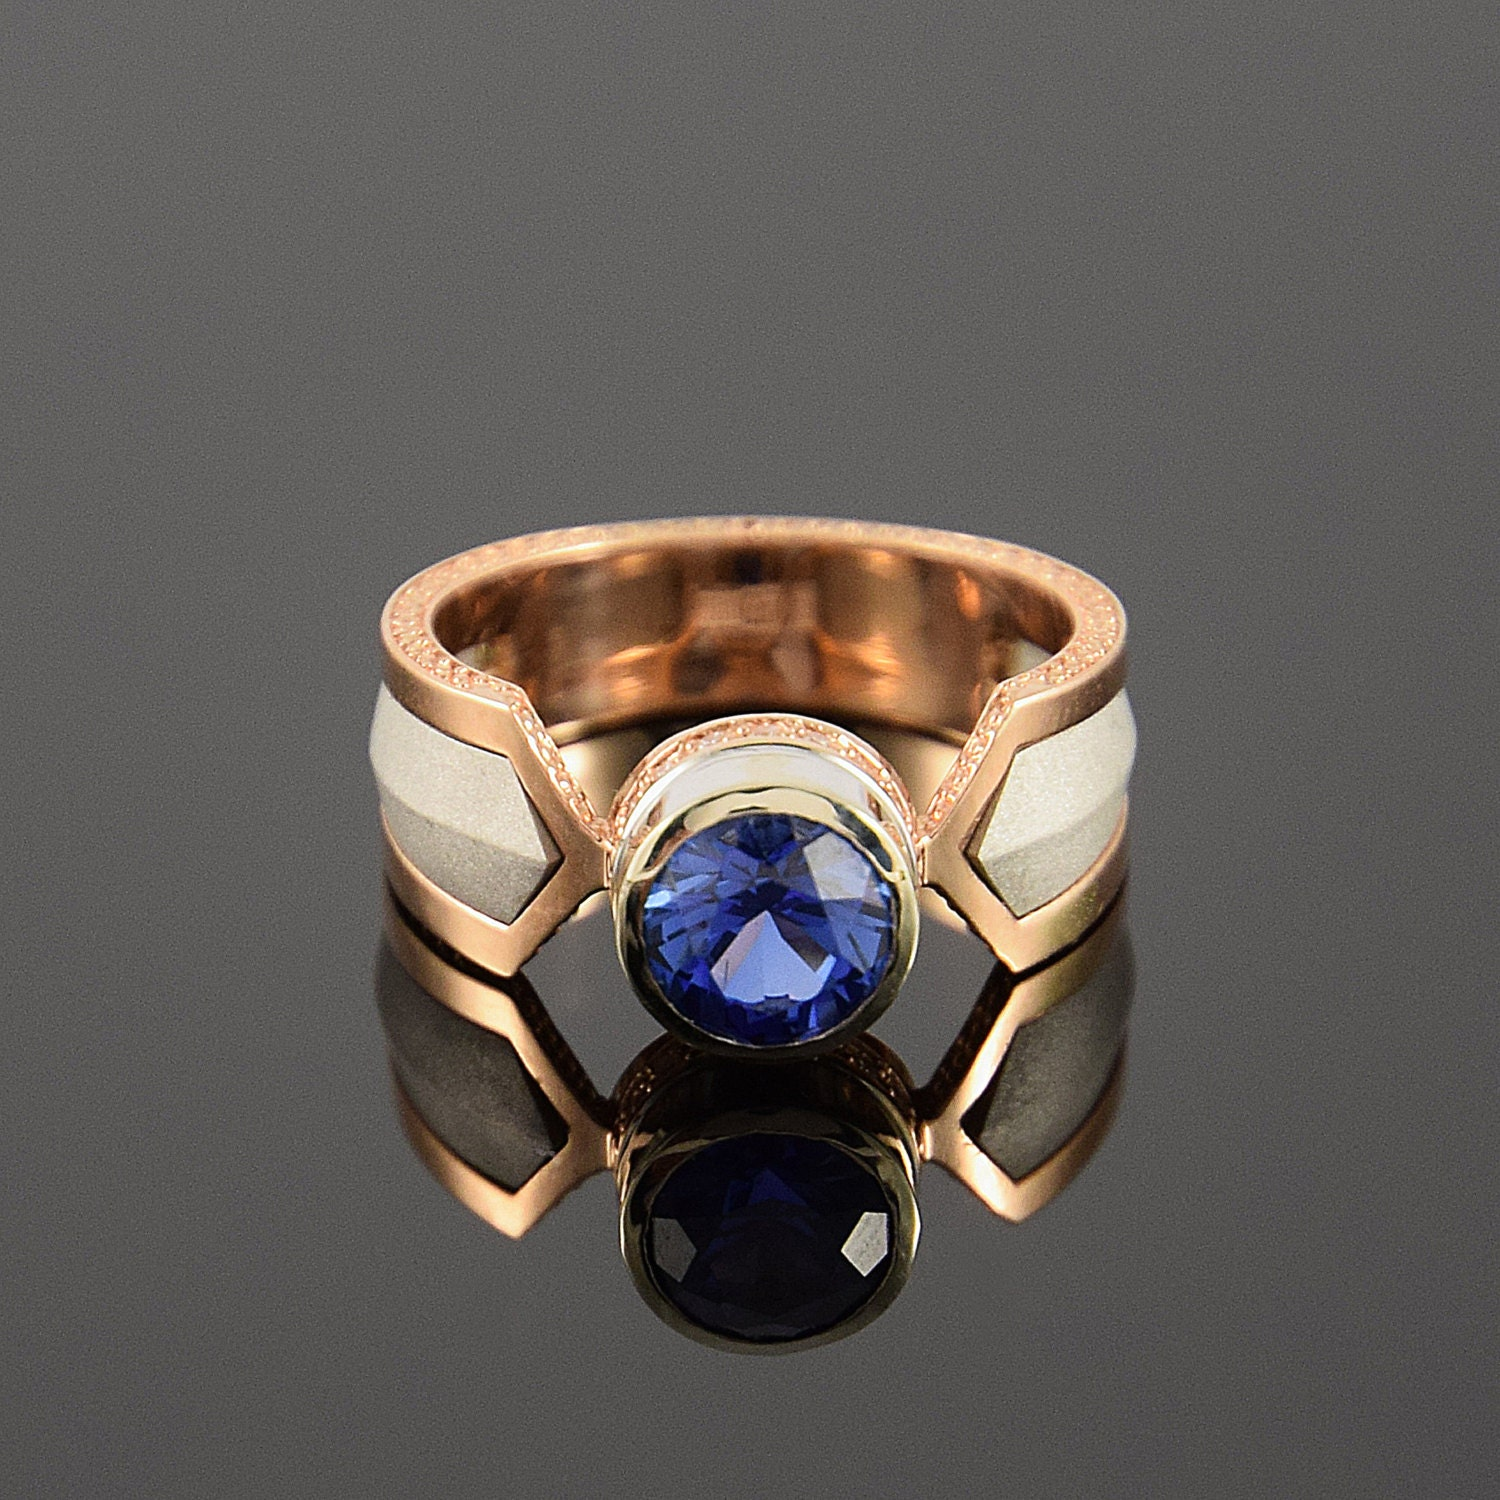 zoom fullxfull gold il men man ring statement bluestone listing au sapphire